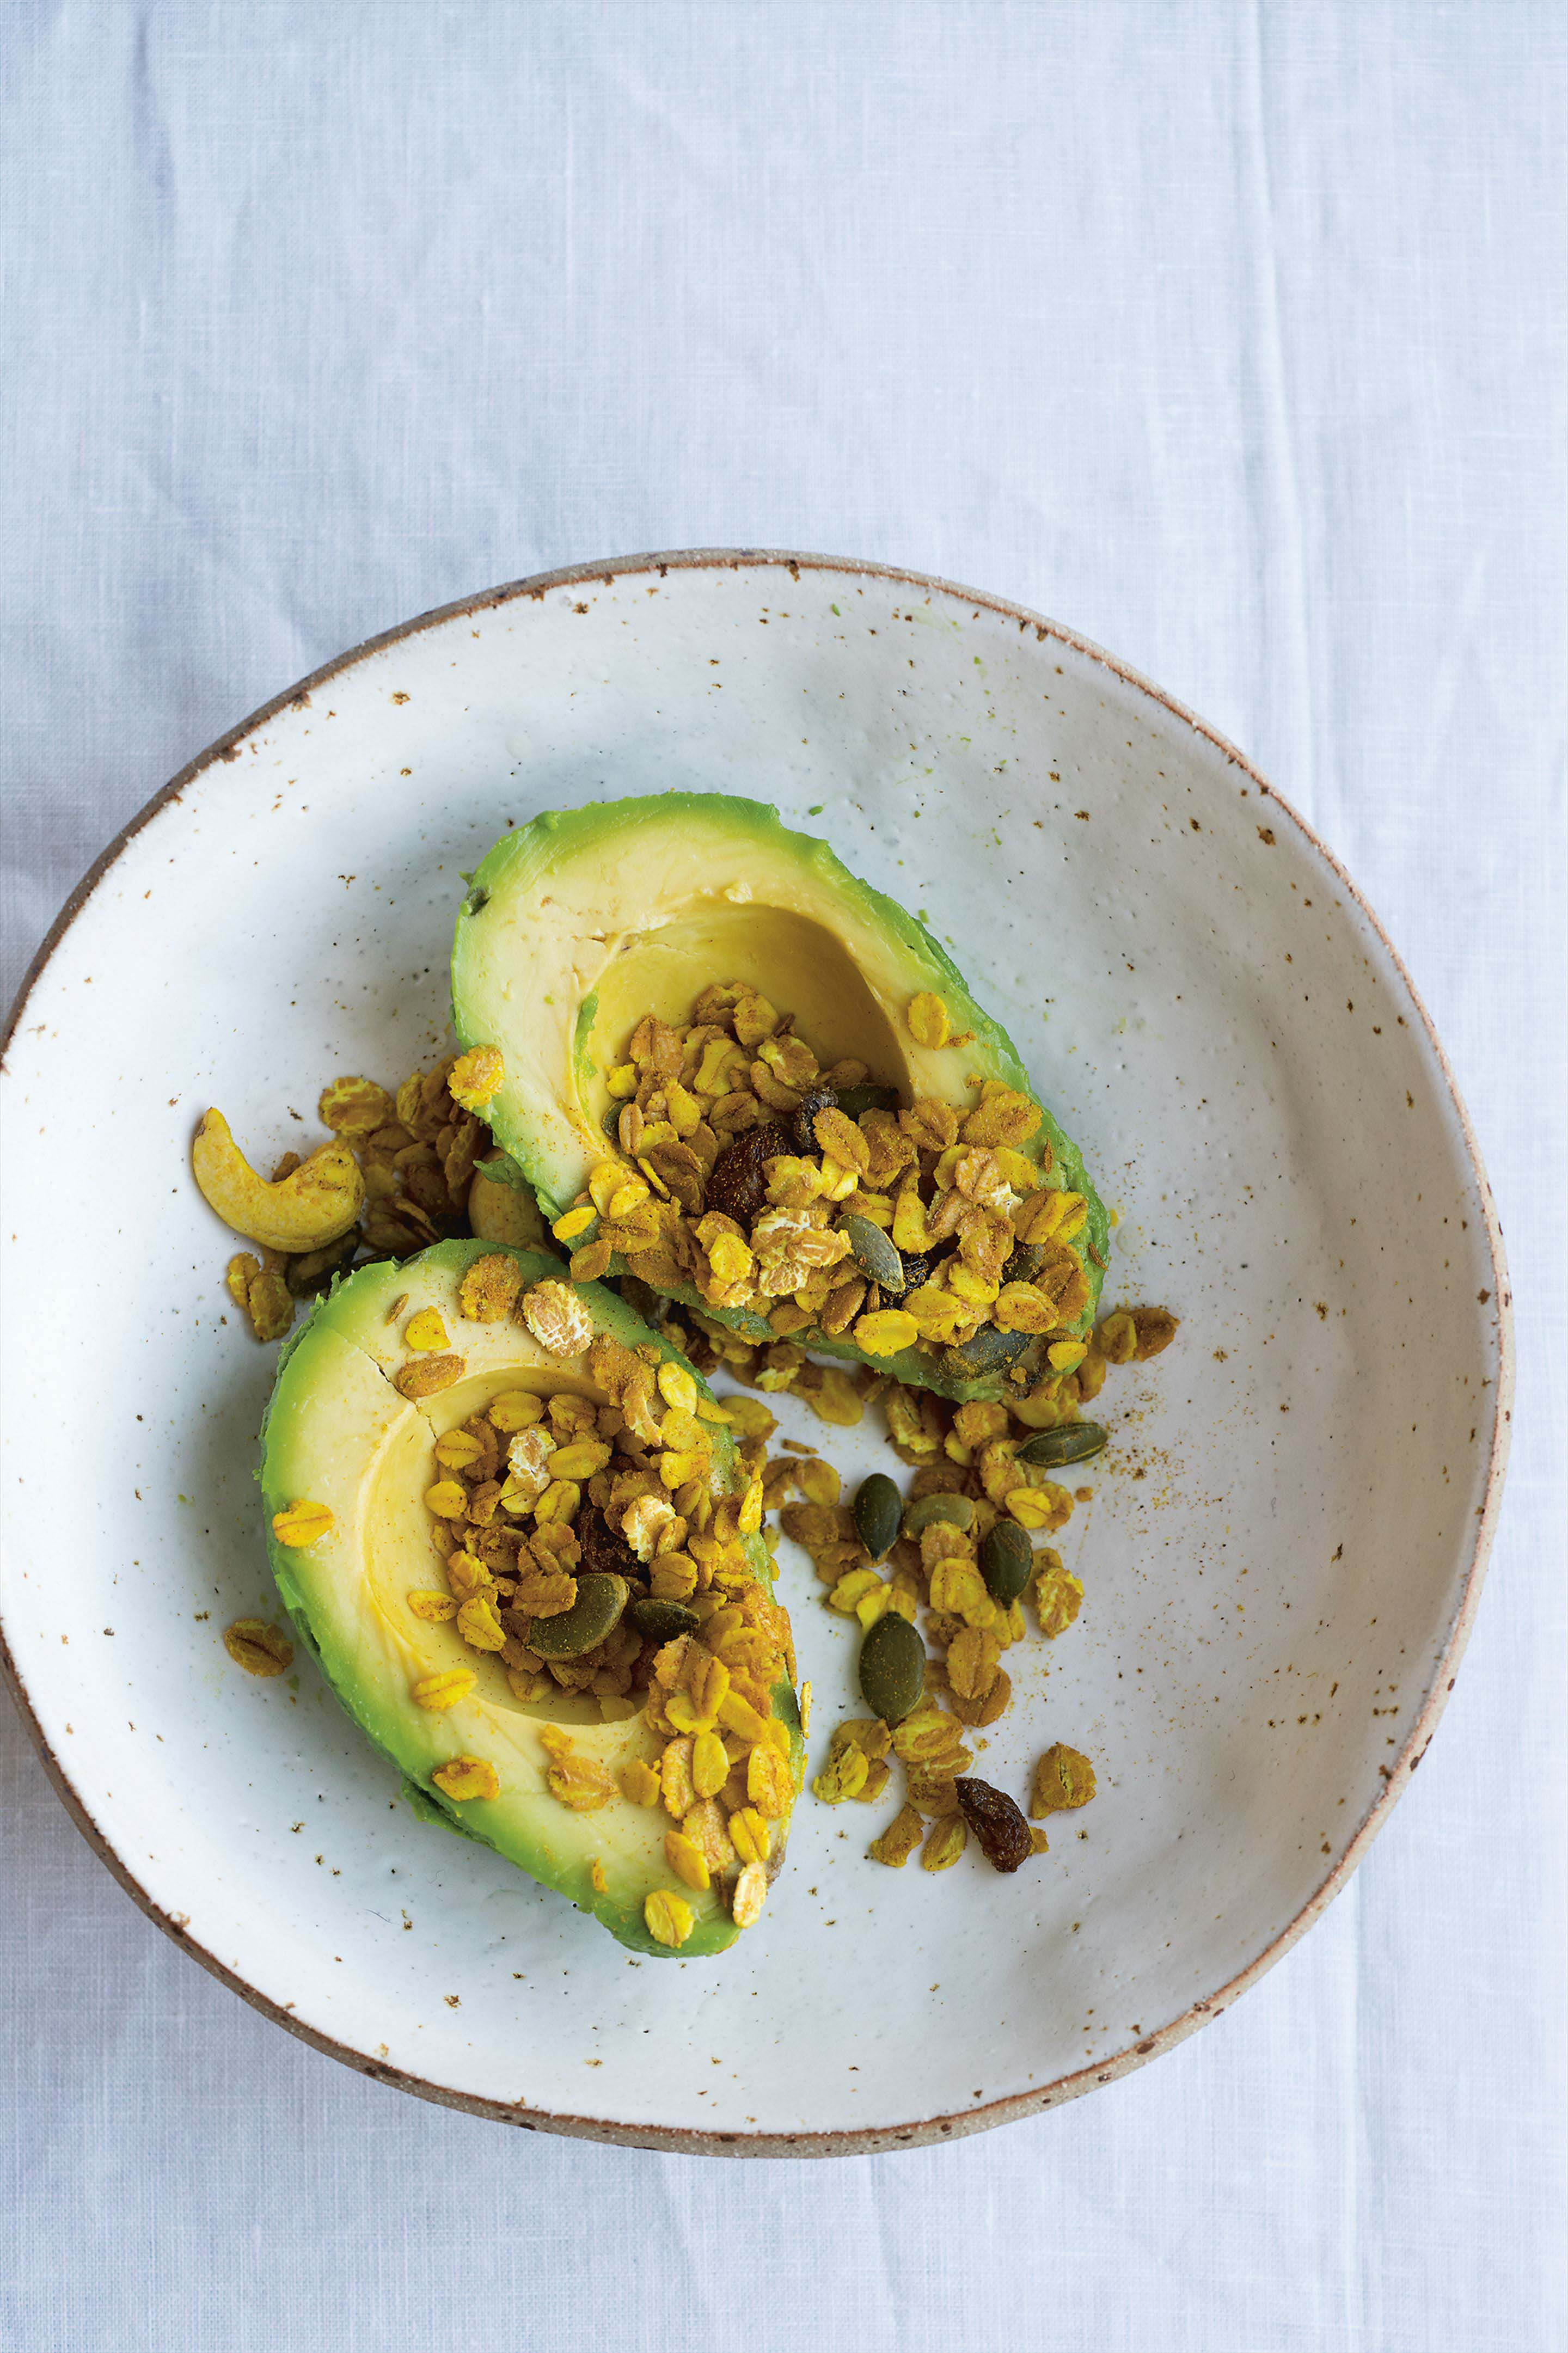 Avocado with savoury granola crunch